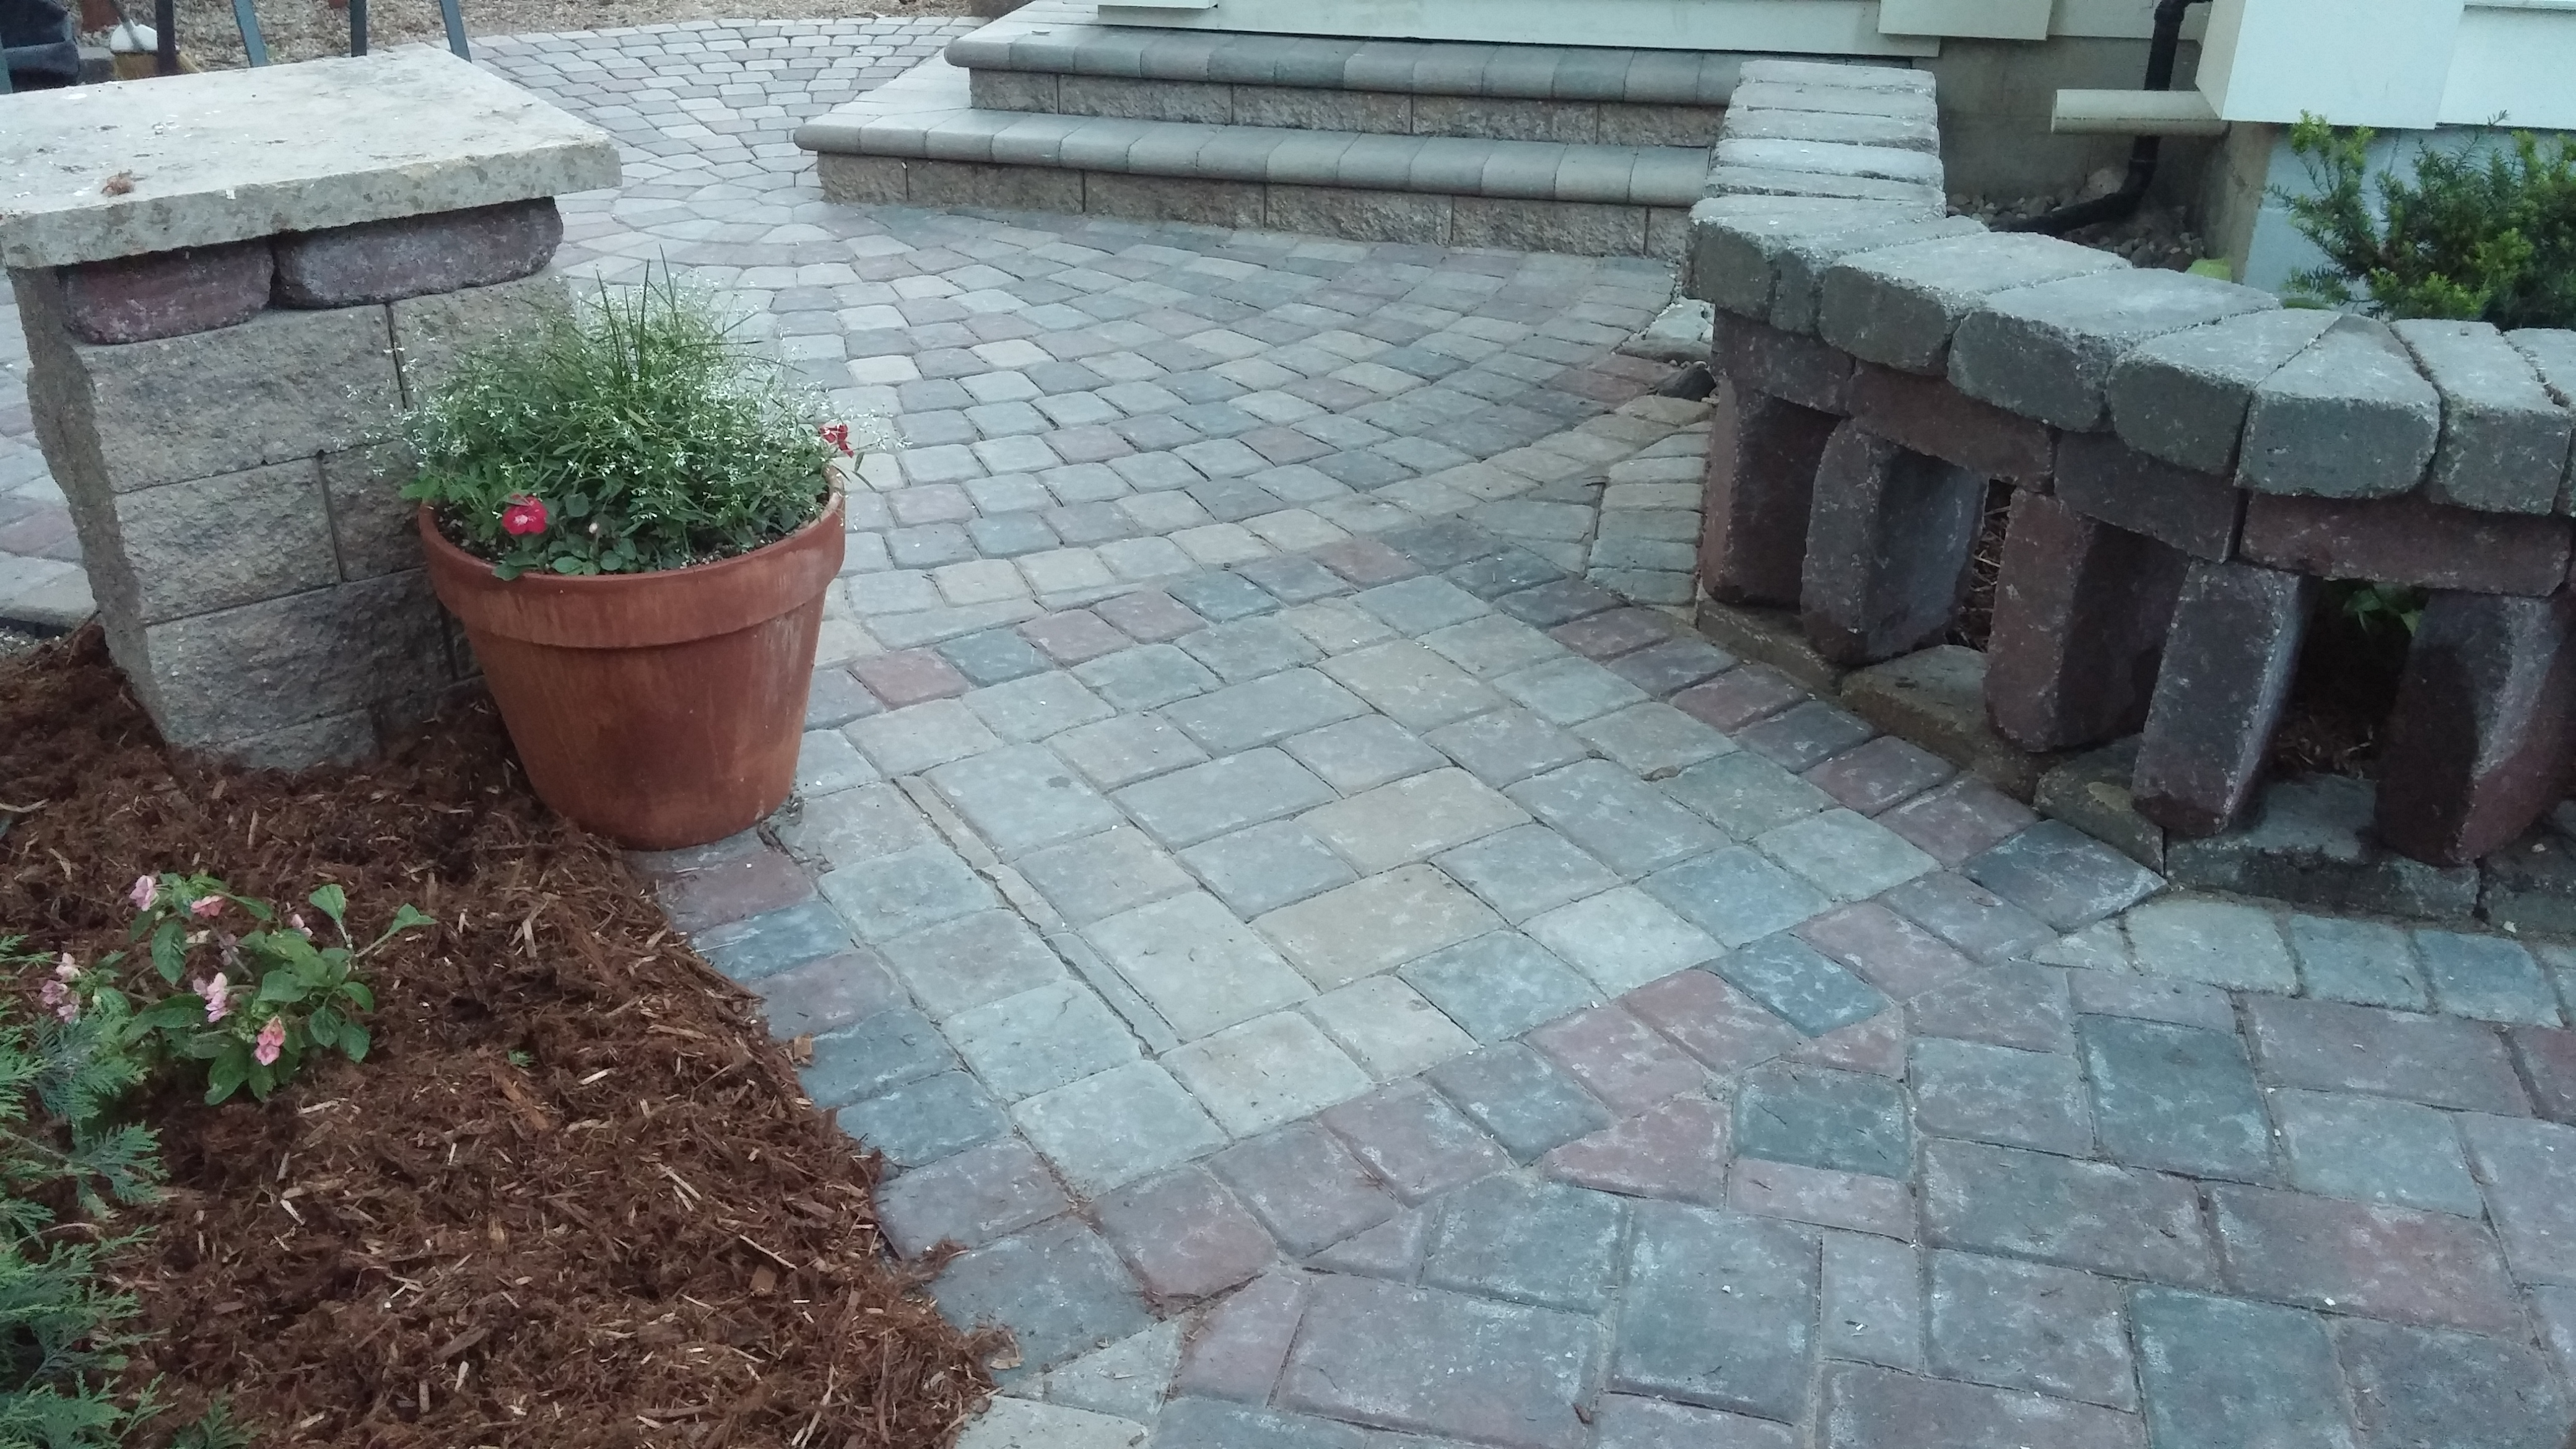 Paver patterns and colors